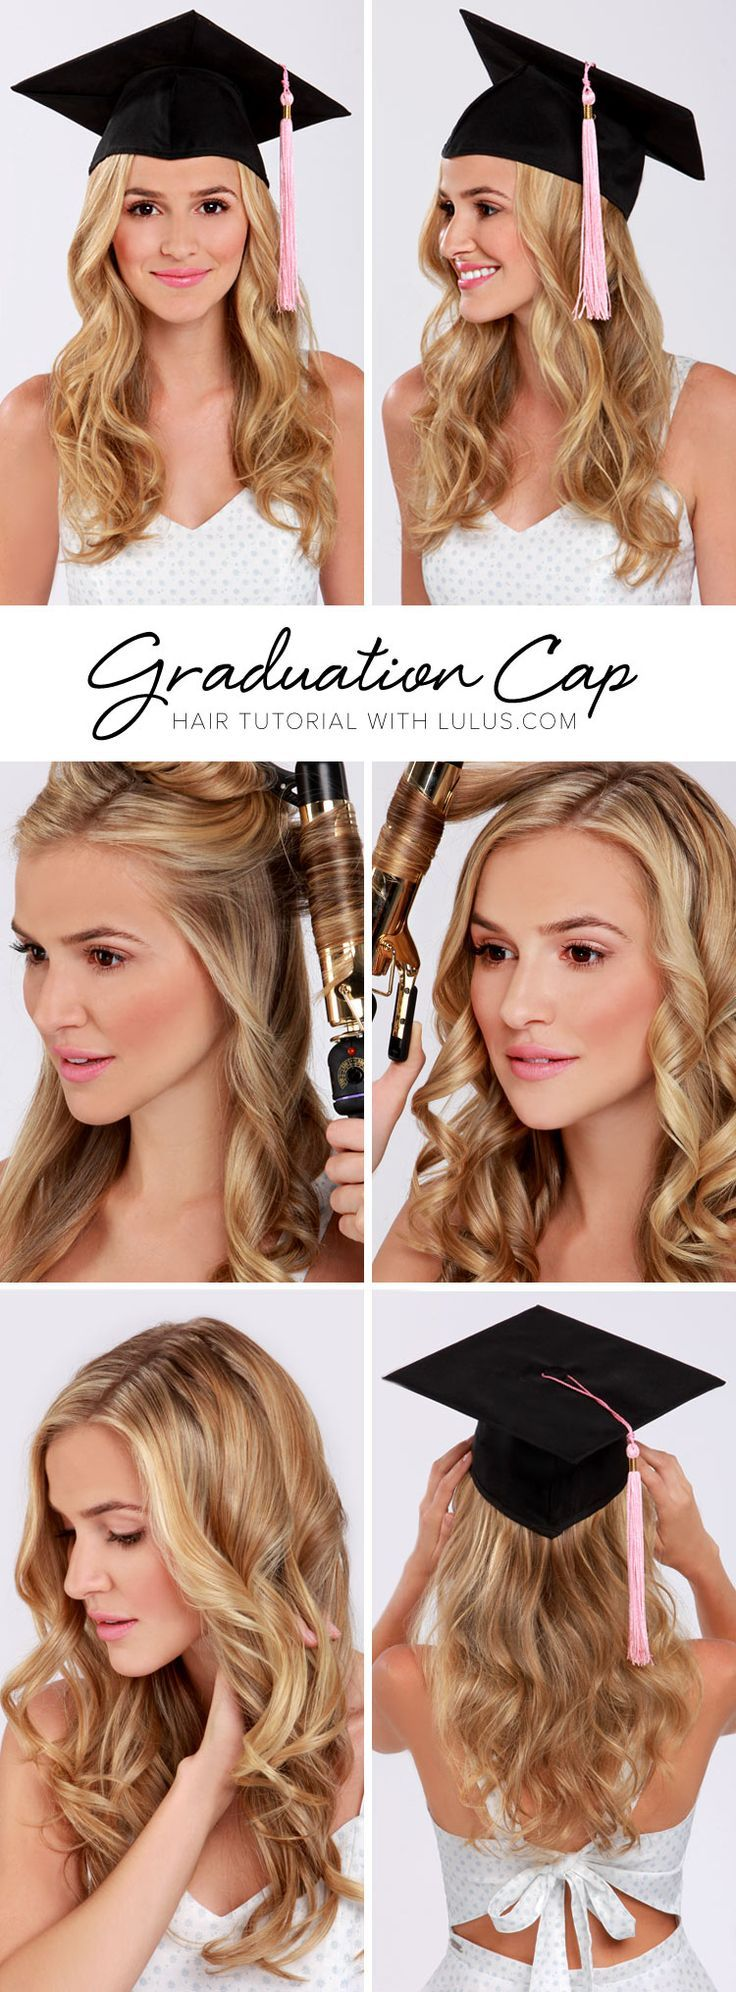 10 Cute And Simple Hair Style Ideas For Graduation Graduation Hairstyles With Cap Graduation Hairstyles Cap Hair